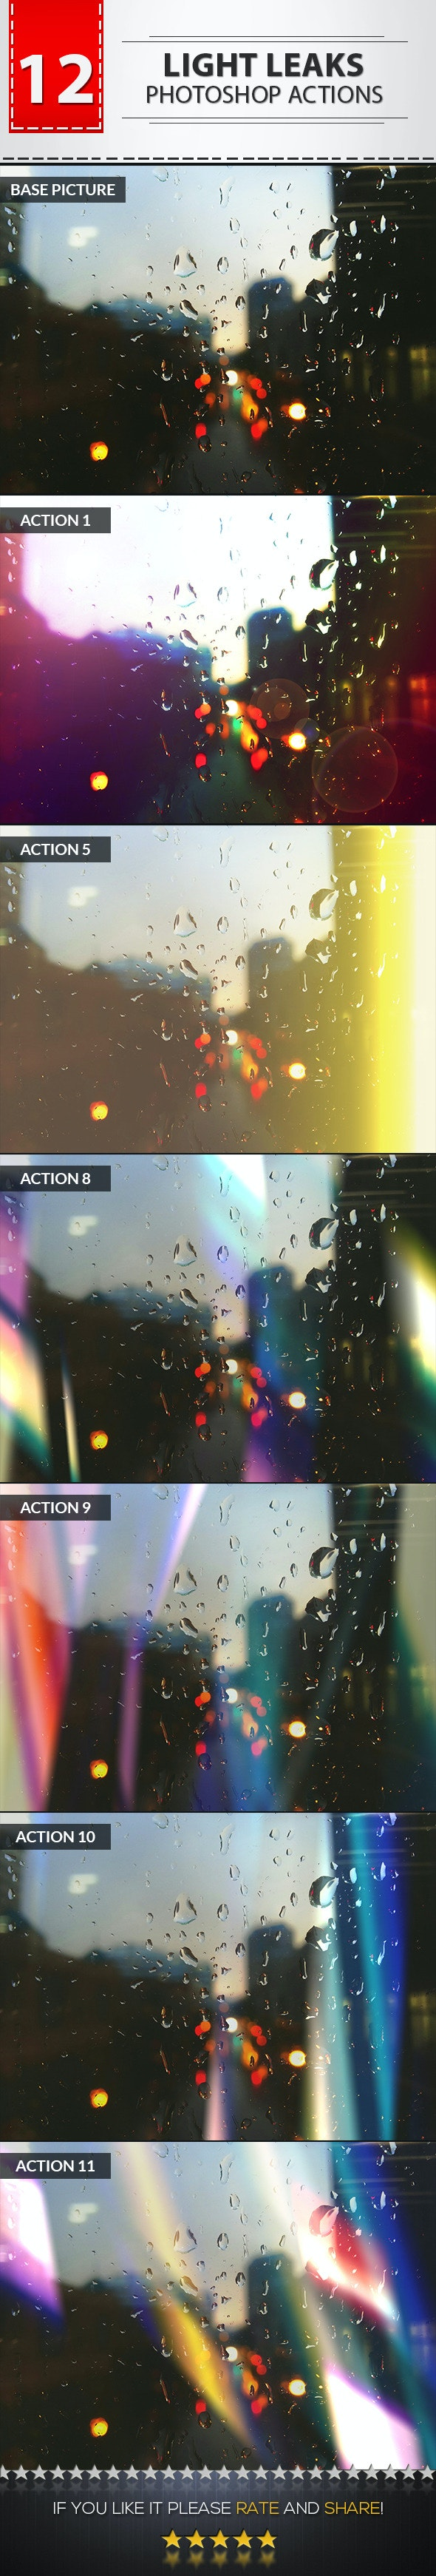 12 Light Leaks Photoshop Actions No.02 - Photo Effects Actions